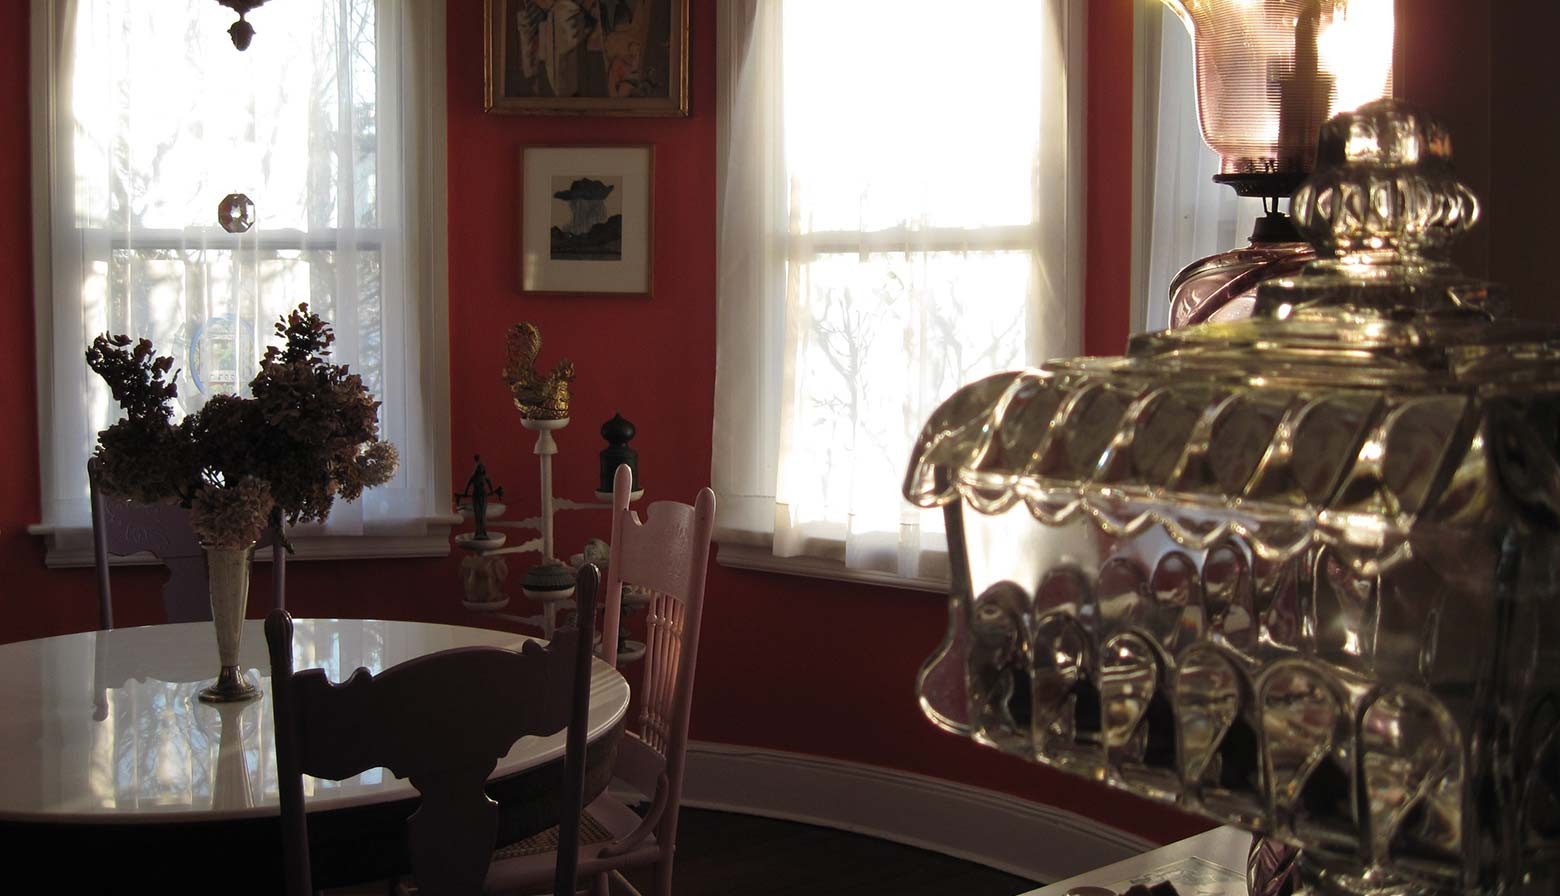 The dining room where the Ouija board sessions took place